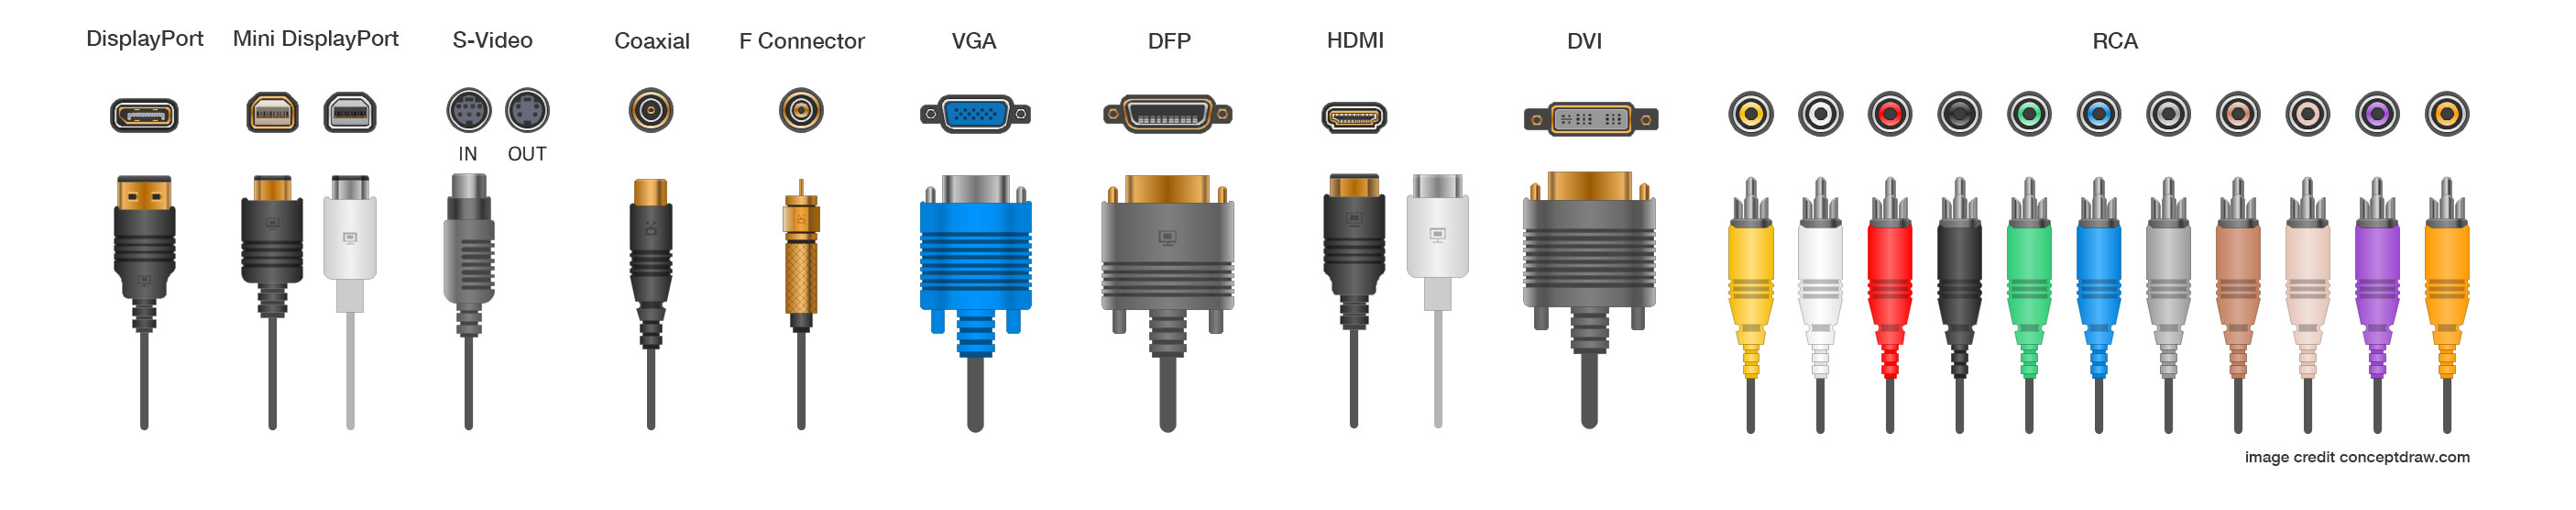 how to daisy chain monitors hdmi